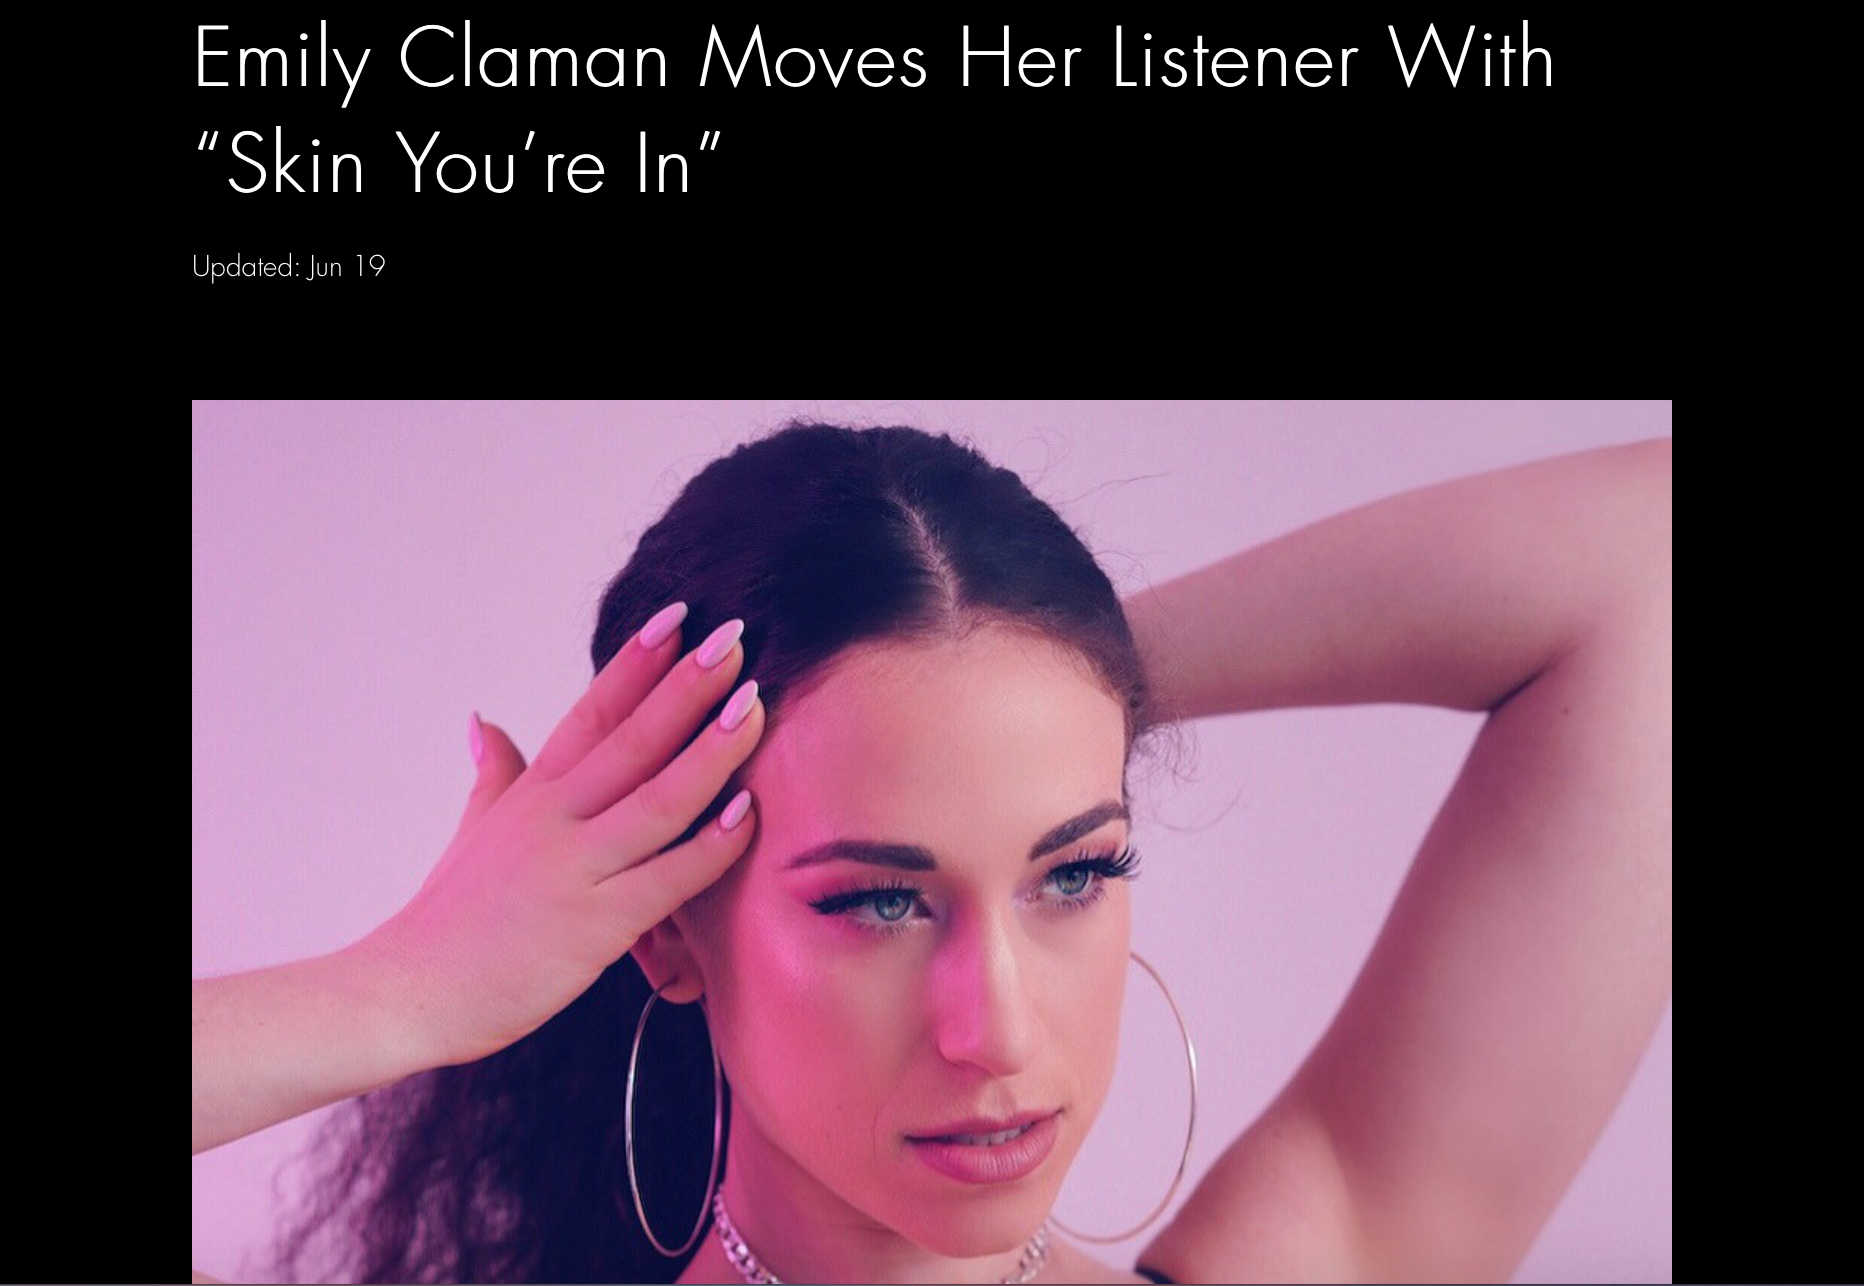 BUZZ MUSIC LA - https://www.buzz-music.com/post/emily-claman-moves-her-listener-with-skin-you-re-in?fbclid=IwAR1DwpCQ3YXzL9UEgfw6Wcz62a2g2KTDMhk9r2F-Kdf9DxE8R58HYrvIYE4